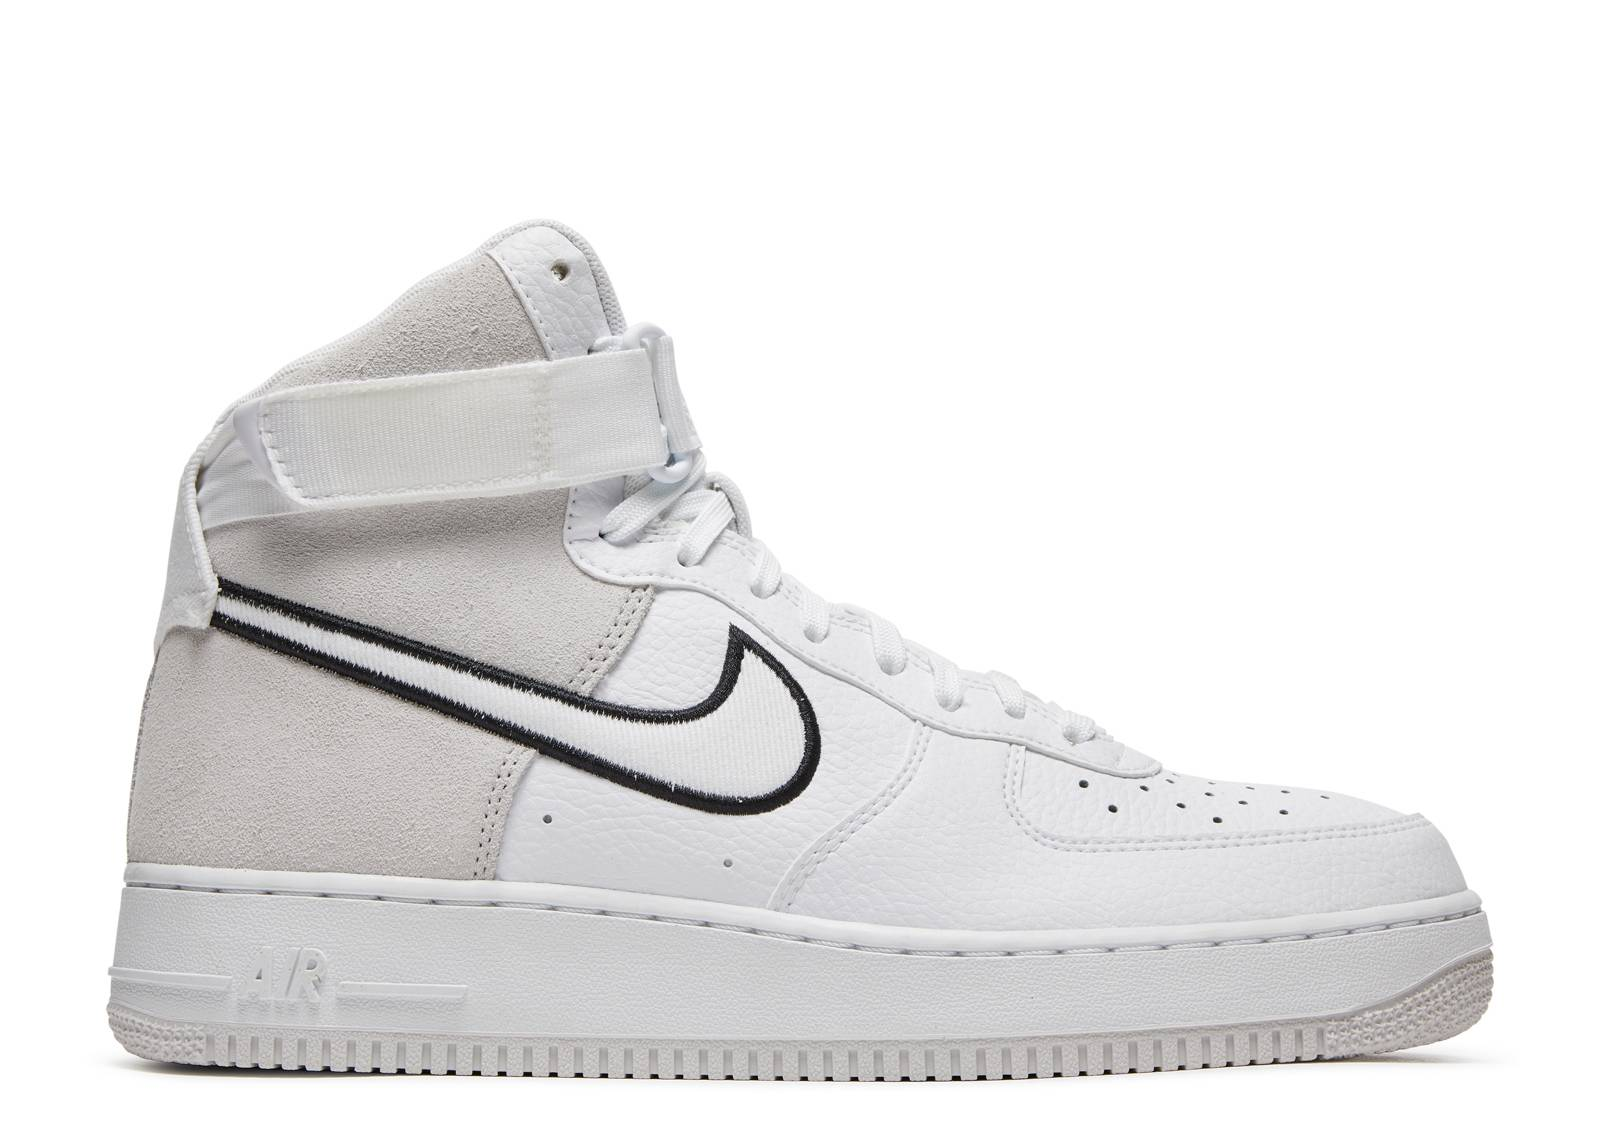 online retailer e58cf 130be Air force 1 high '07 LV8 1